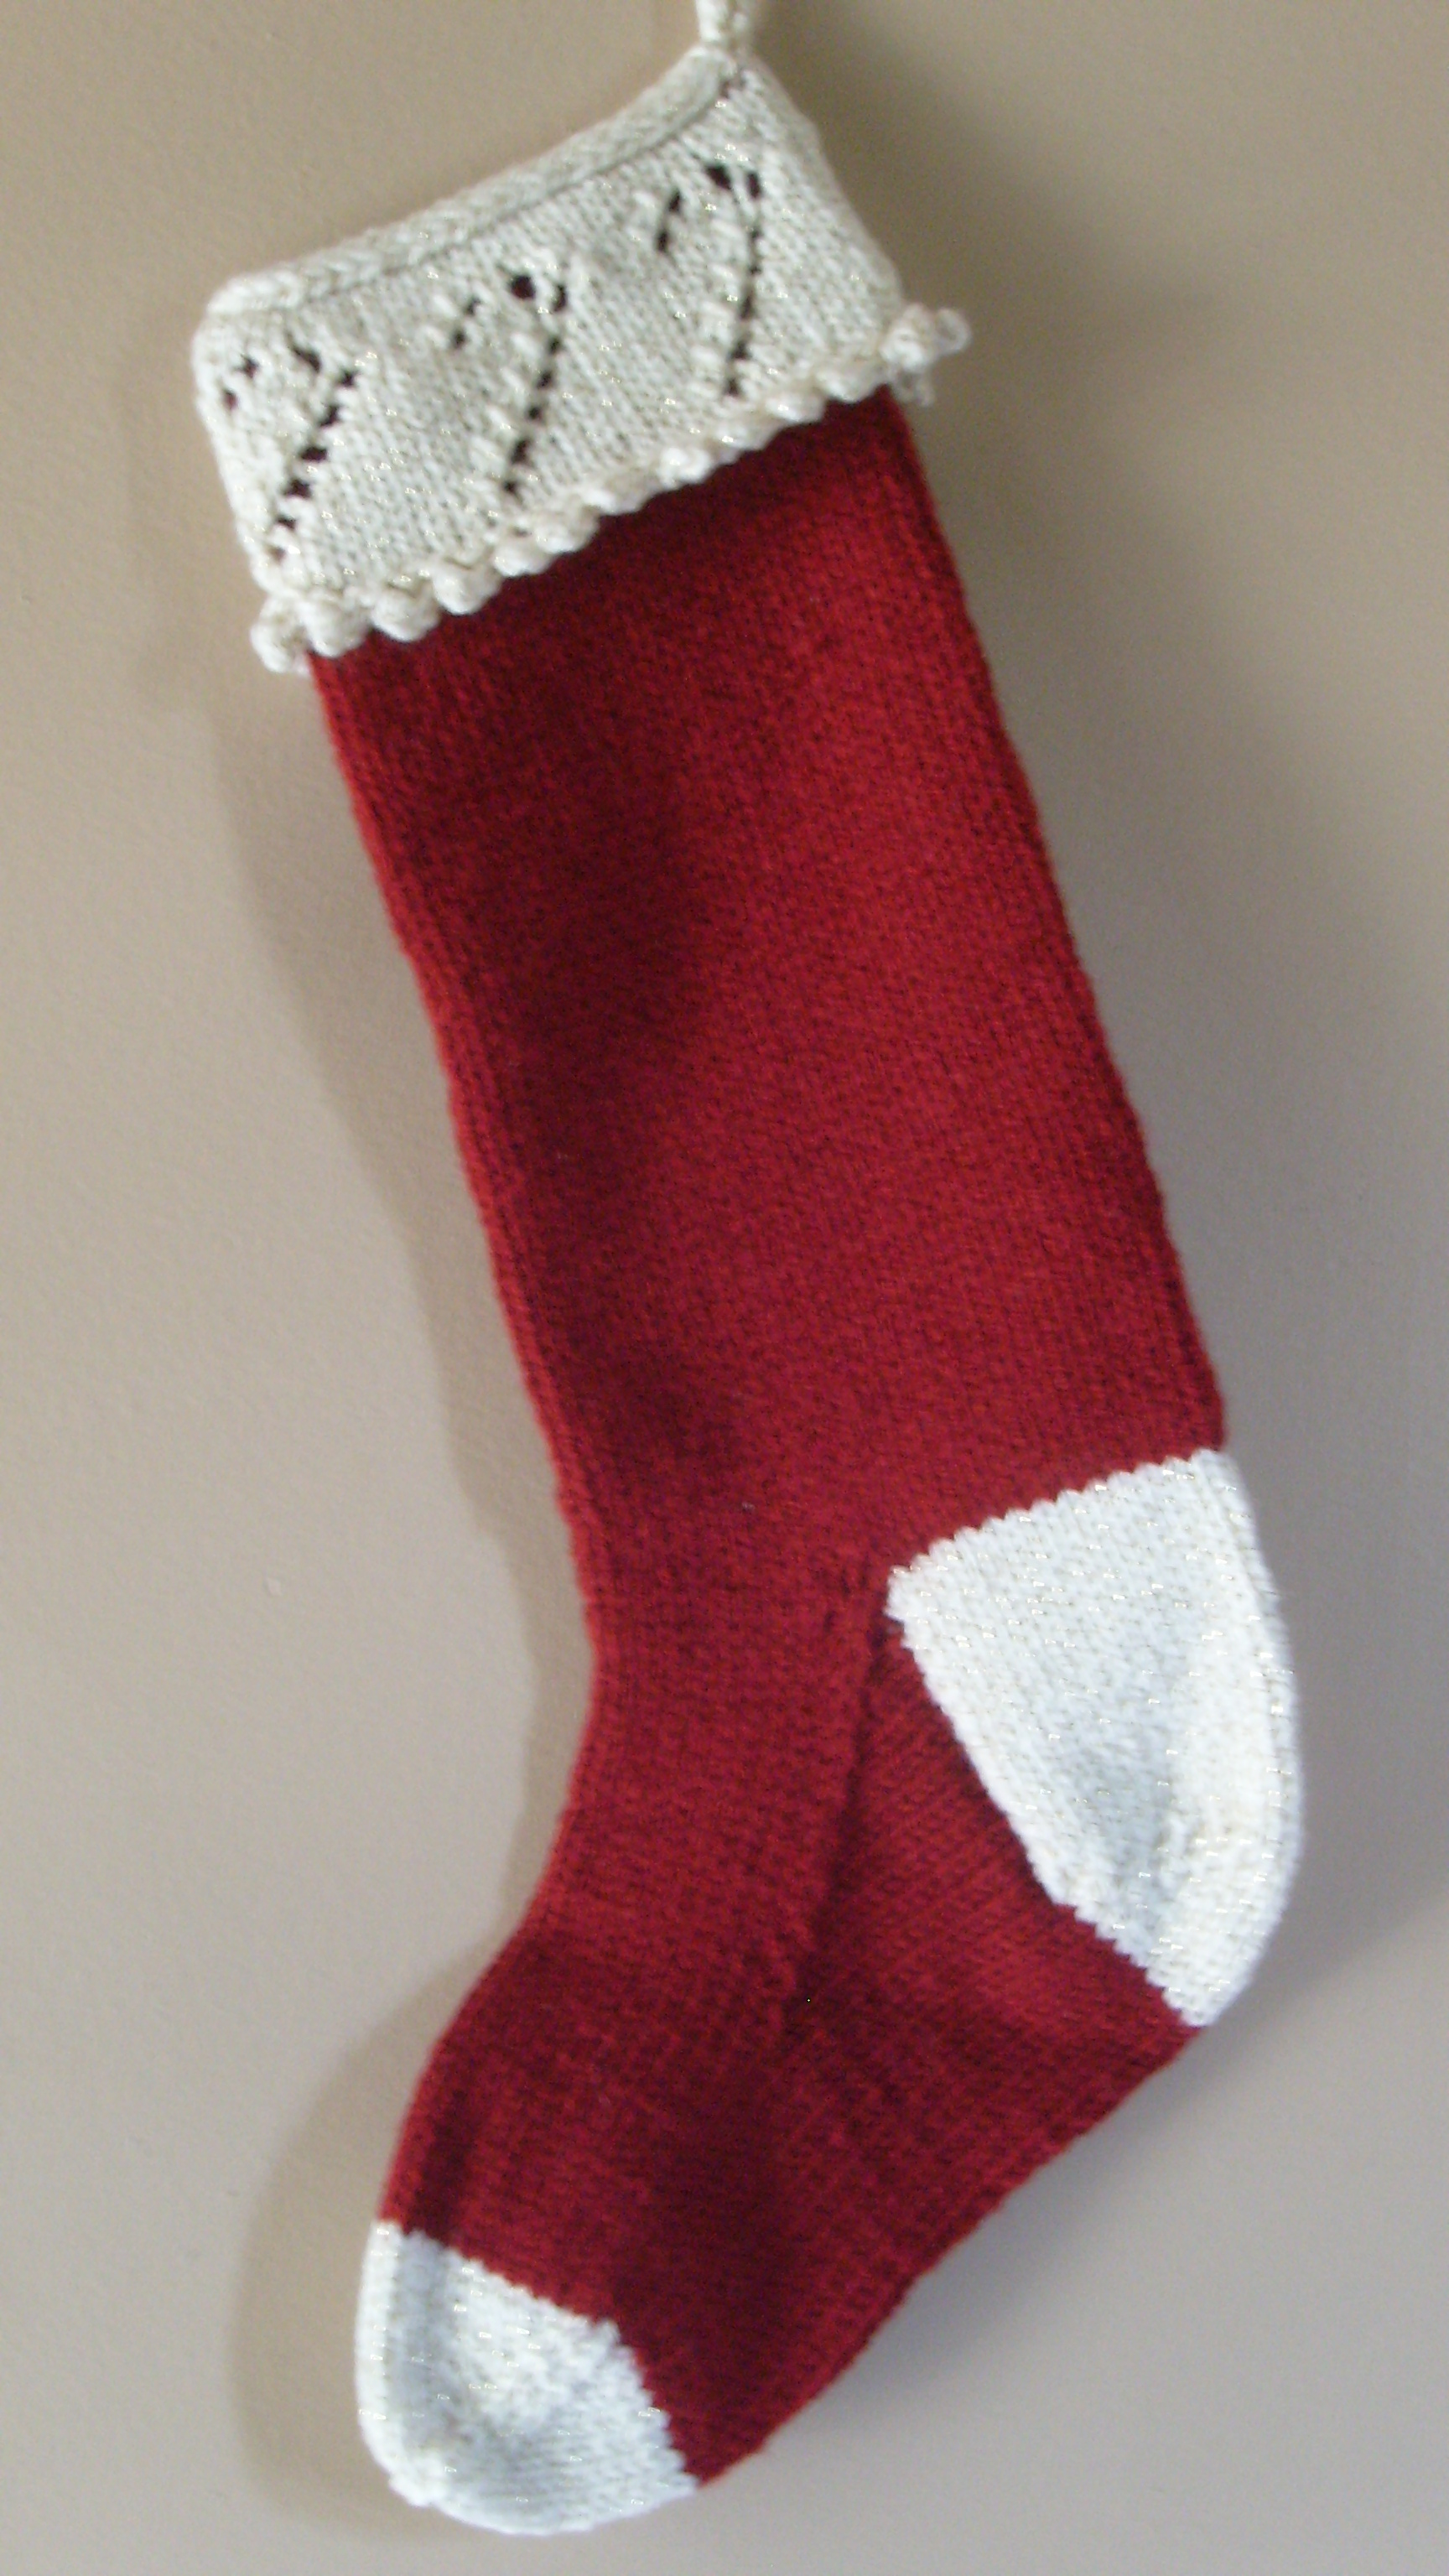 Home Accessories: Attractive Knit Christmas Stockings With ...